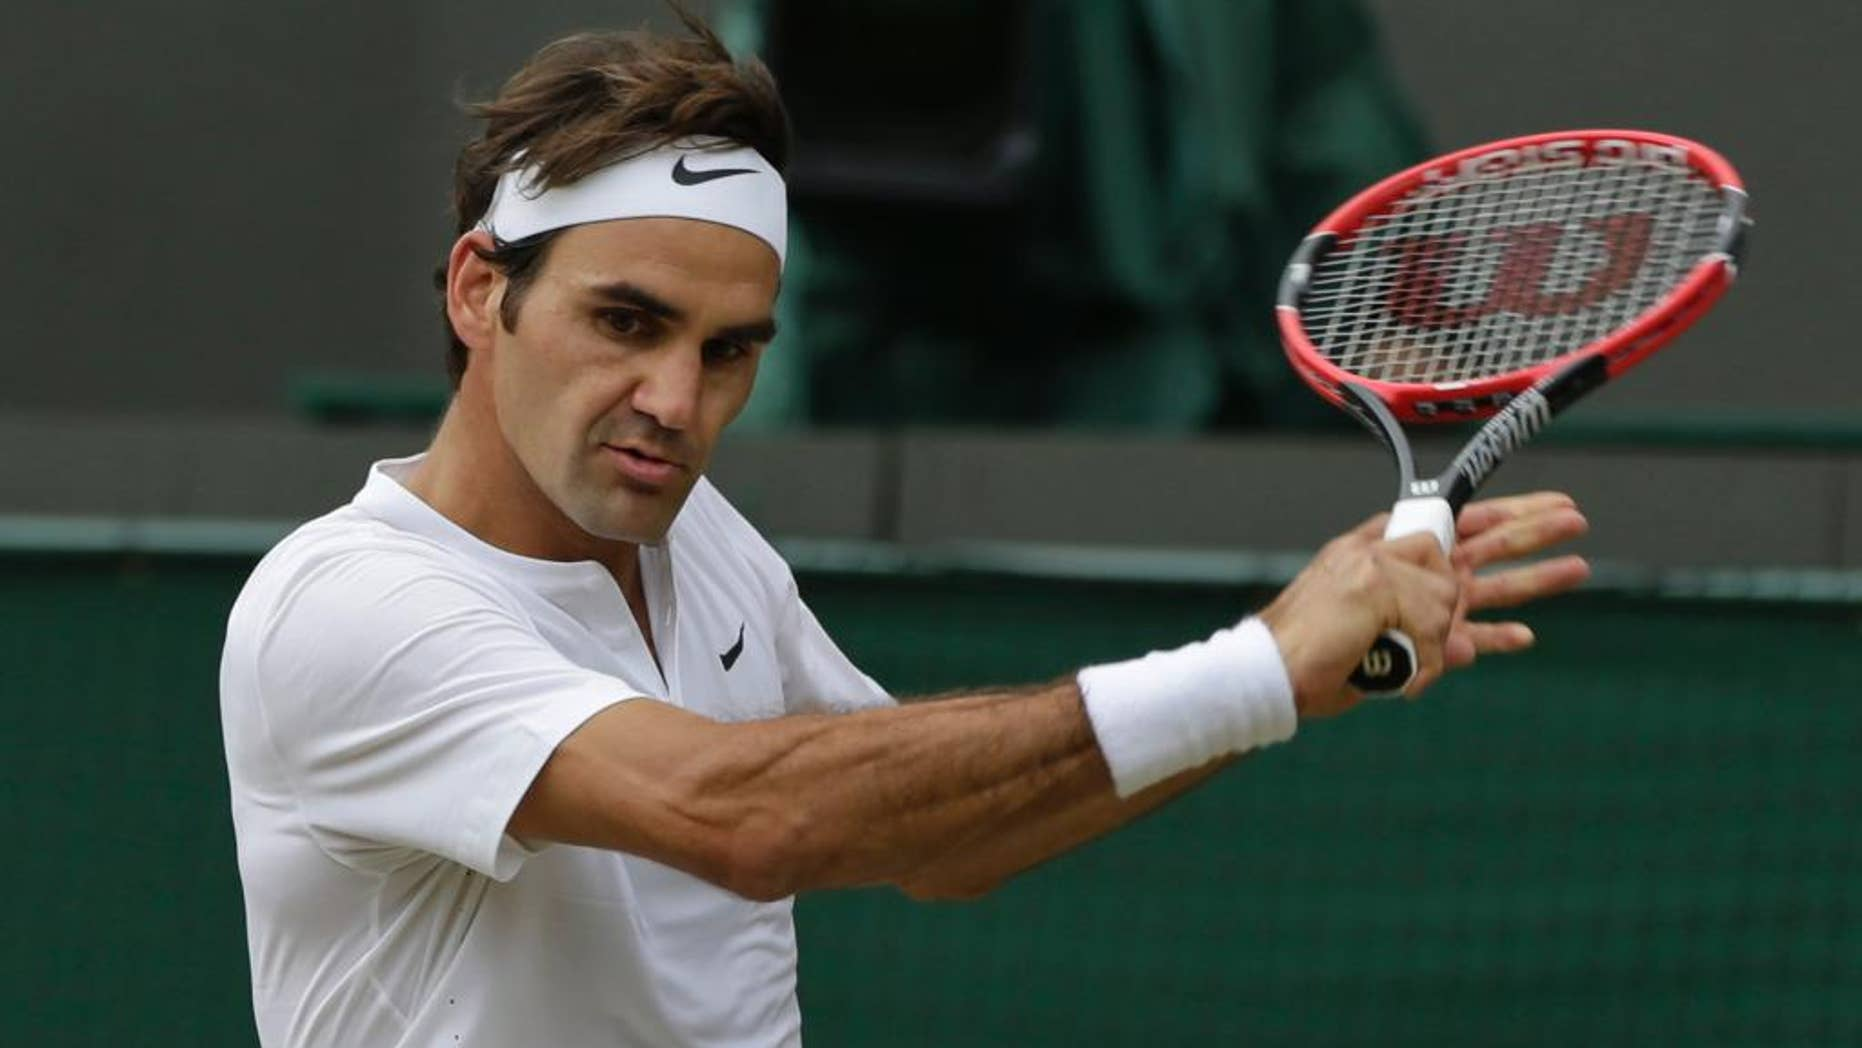 Roger Federer of Switzerland plays a return to Gilles Simon of France during the men's quarterfinal singles match at the All England Lawn Tennis Championships in Wimbledon, London, Wednesday July 8, 2015. (AP Photo/Pavel Golovkin)